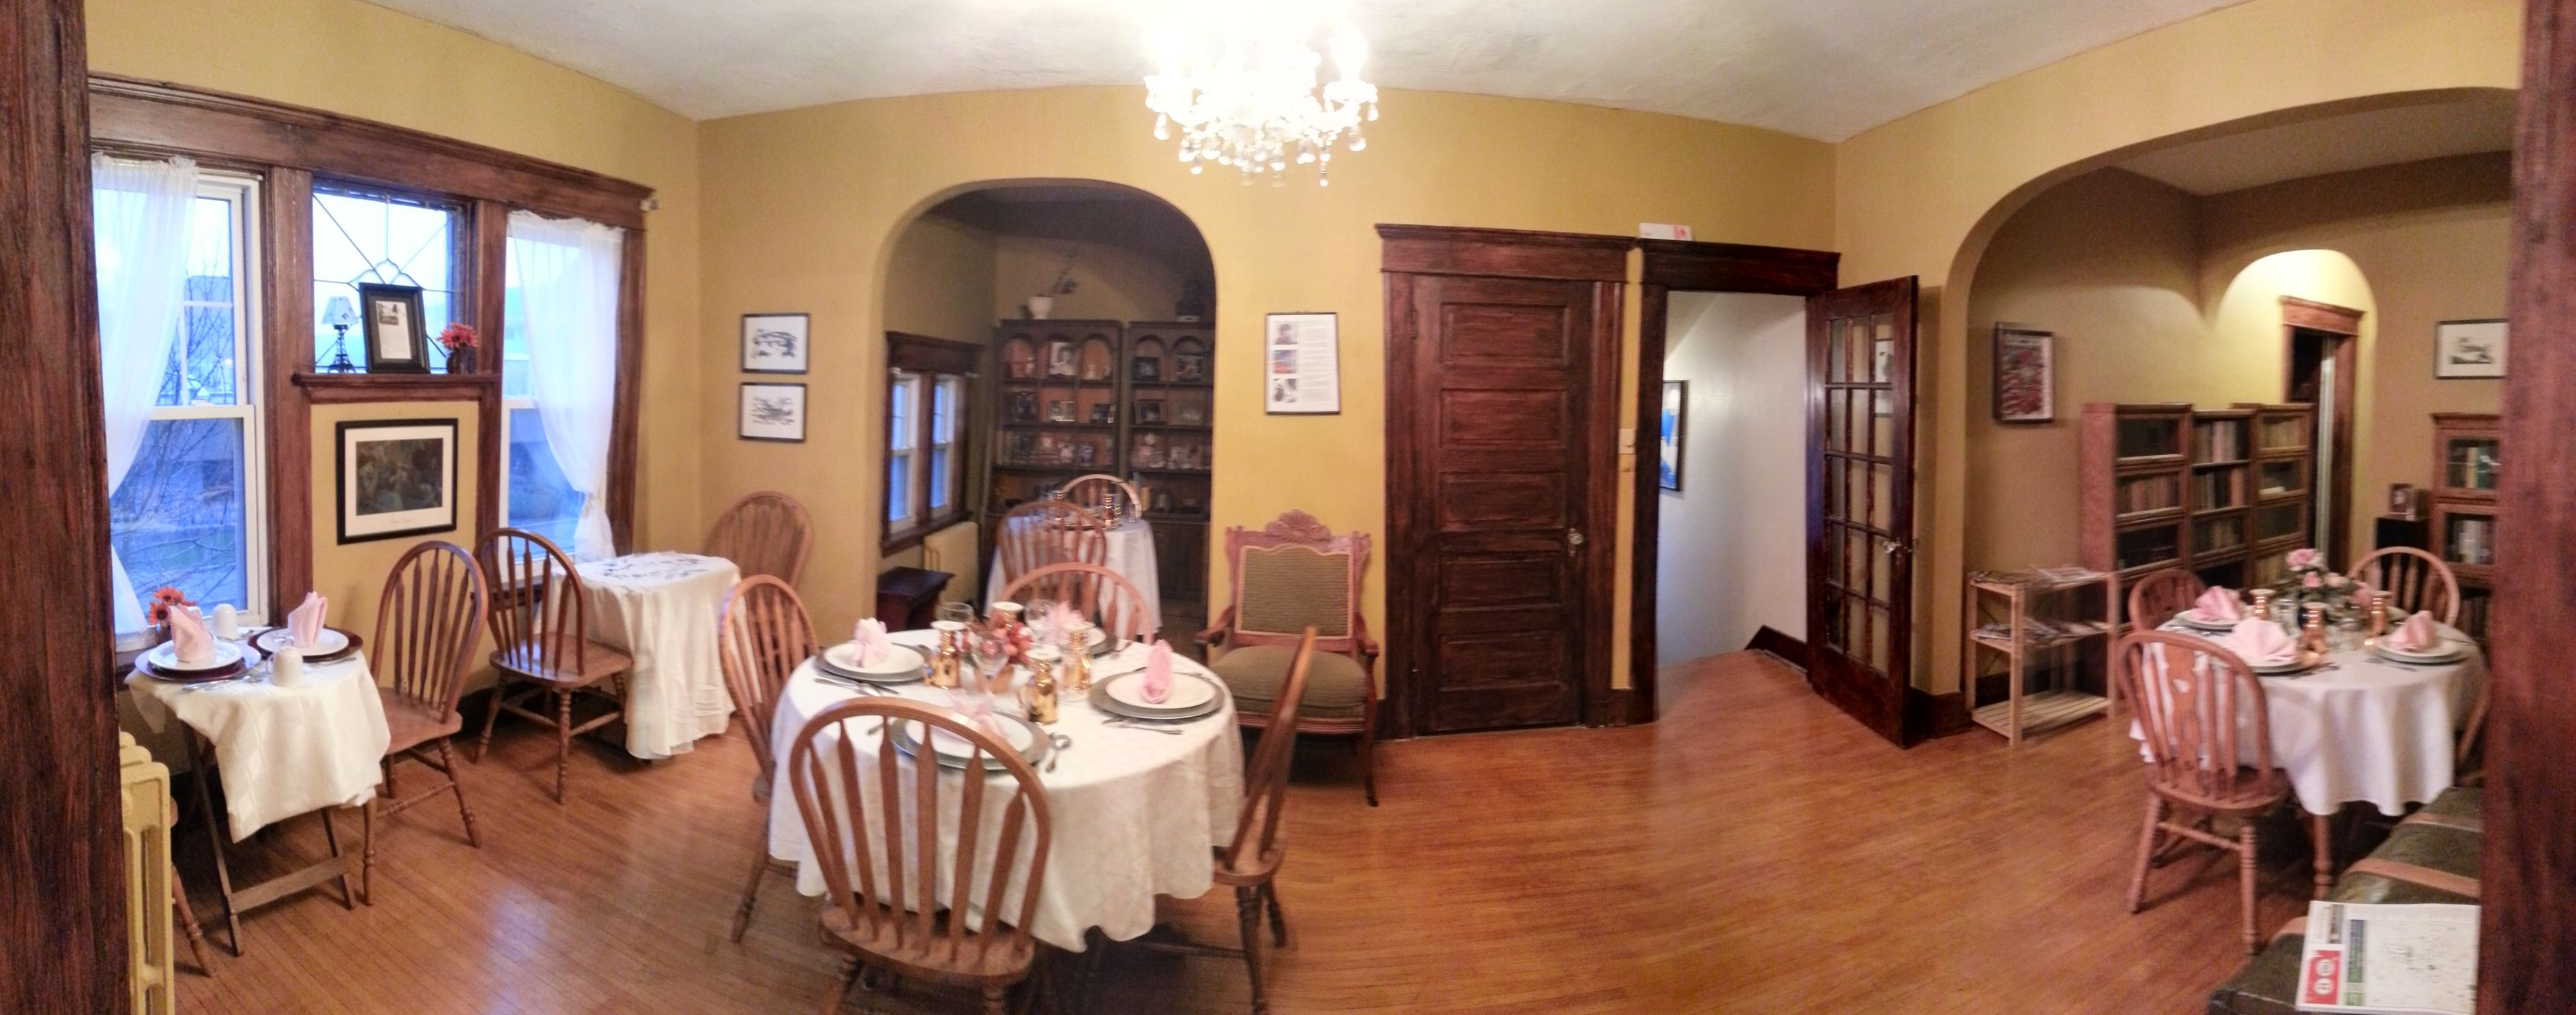 One of three dinning area in the second floor of the Thomas Snook House.